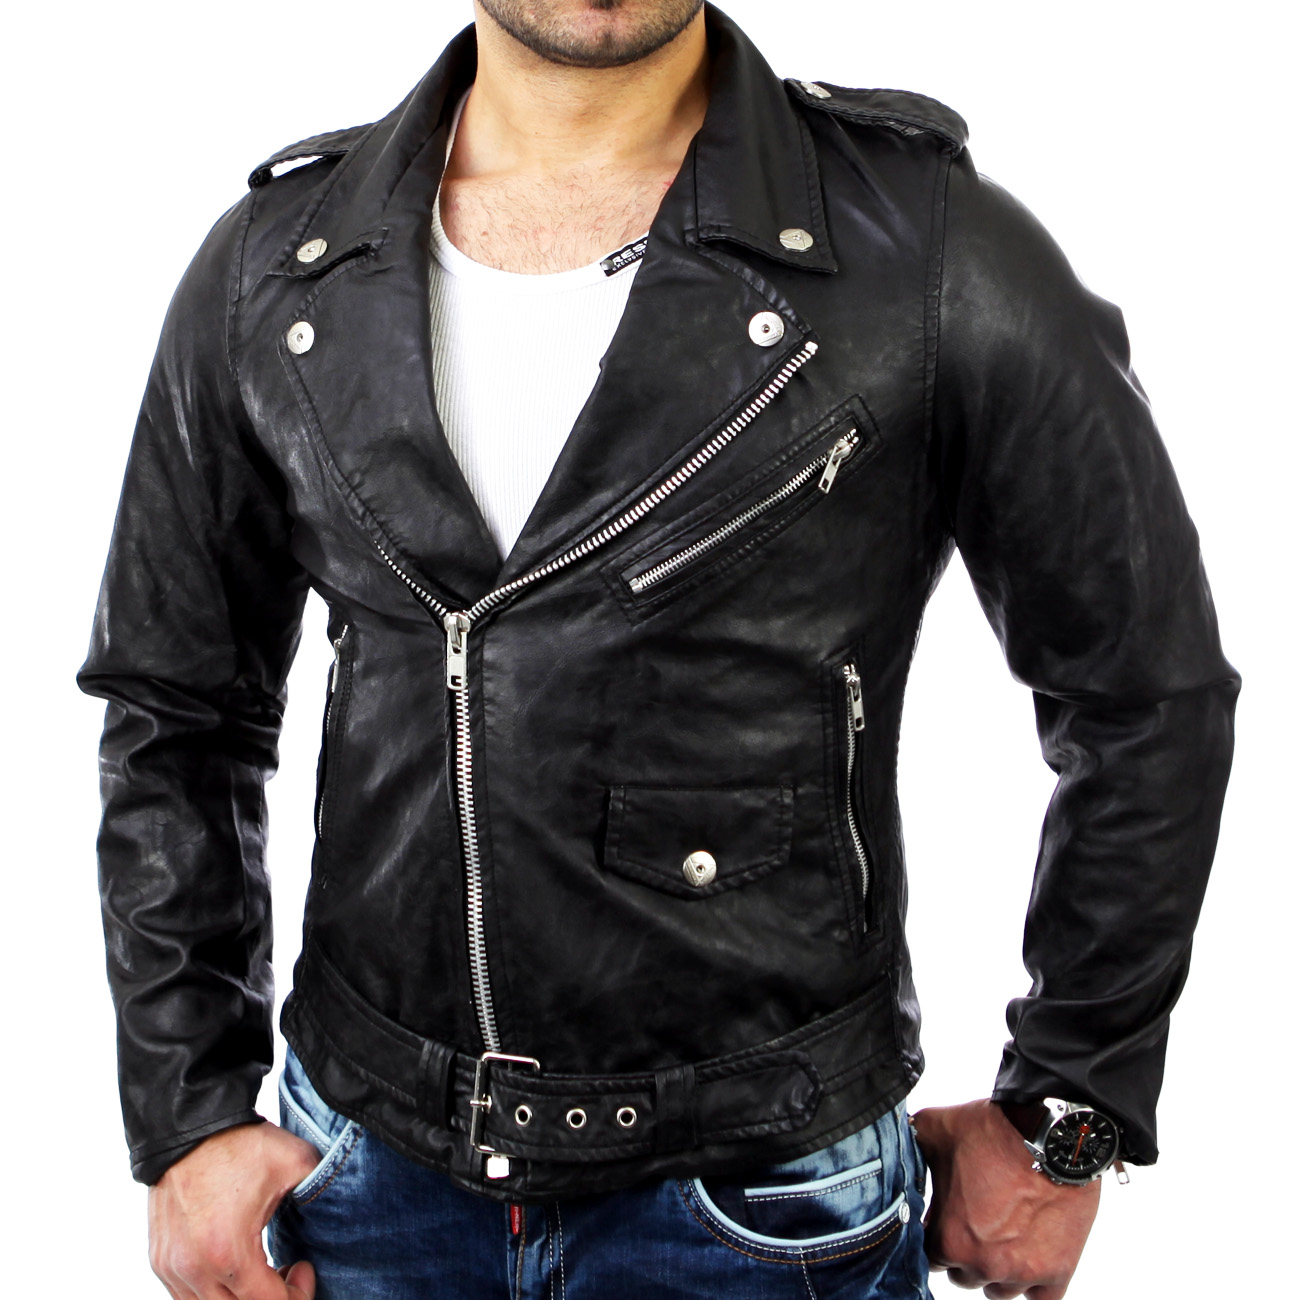 reslad herren biker jacke zipper kunst lederjacke rs 7769. Black Bedroom Furniture Sets. Home Design Ideas